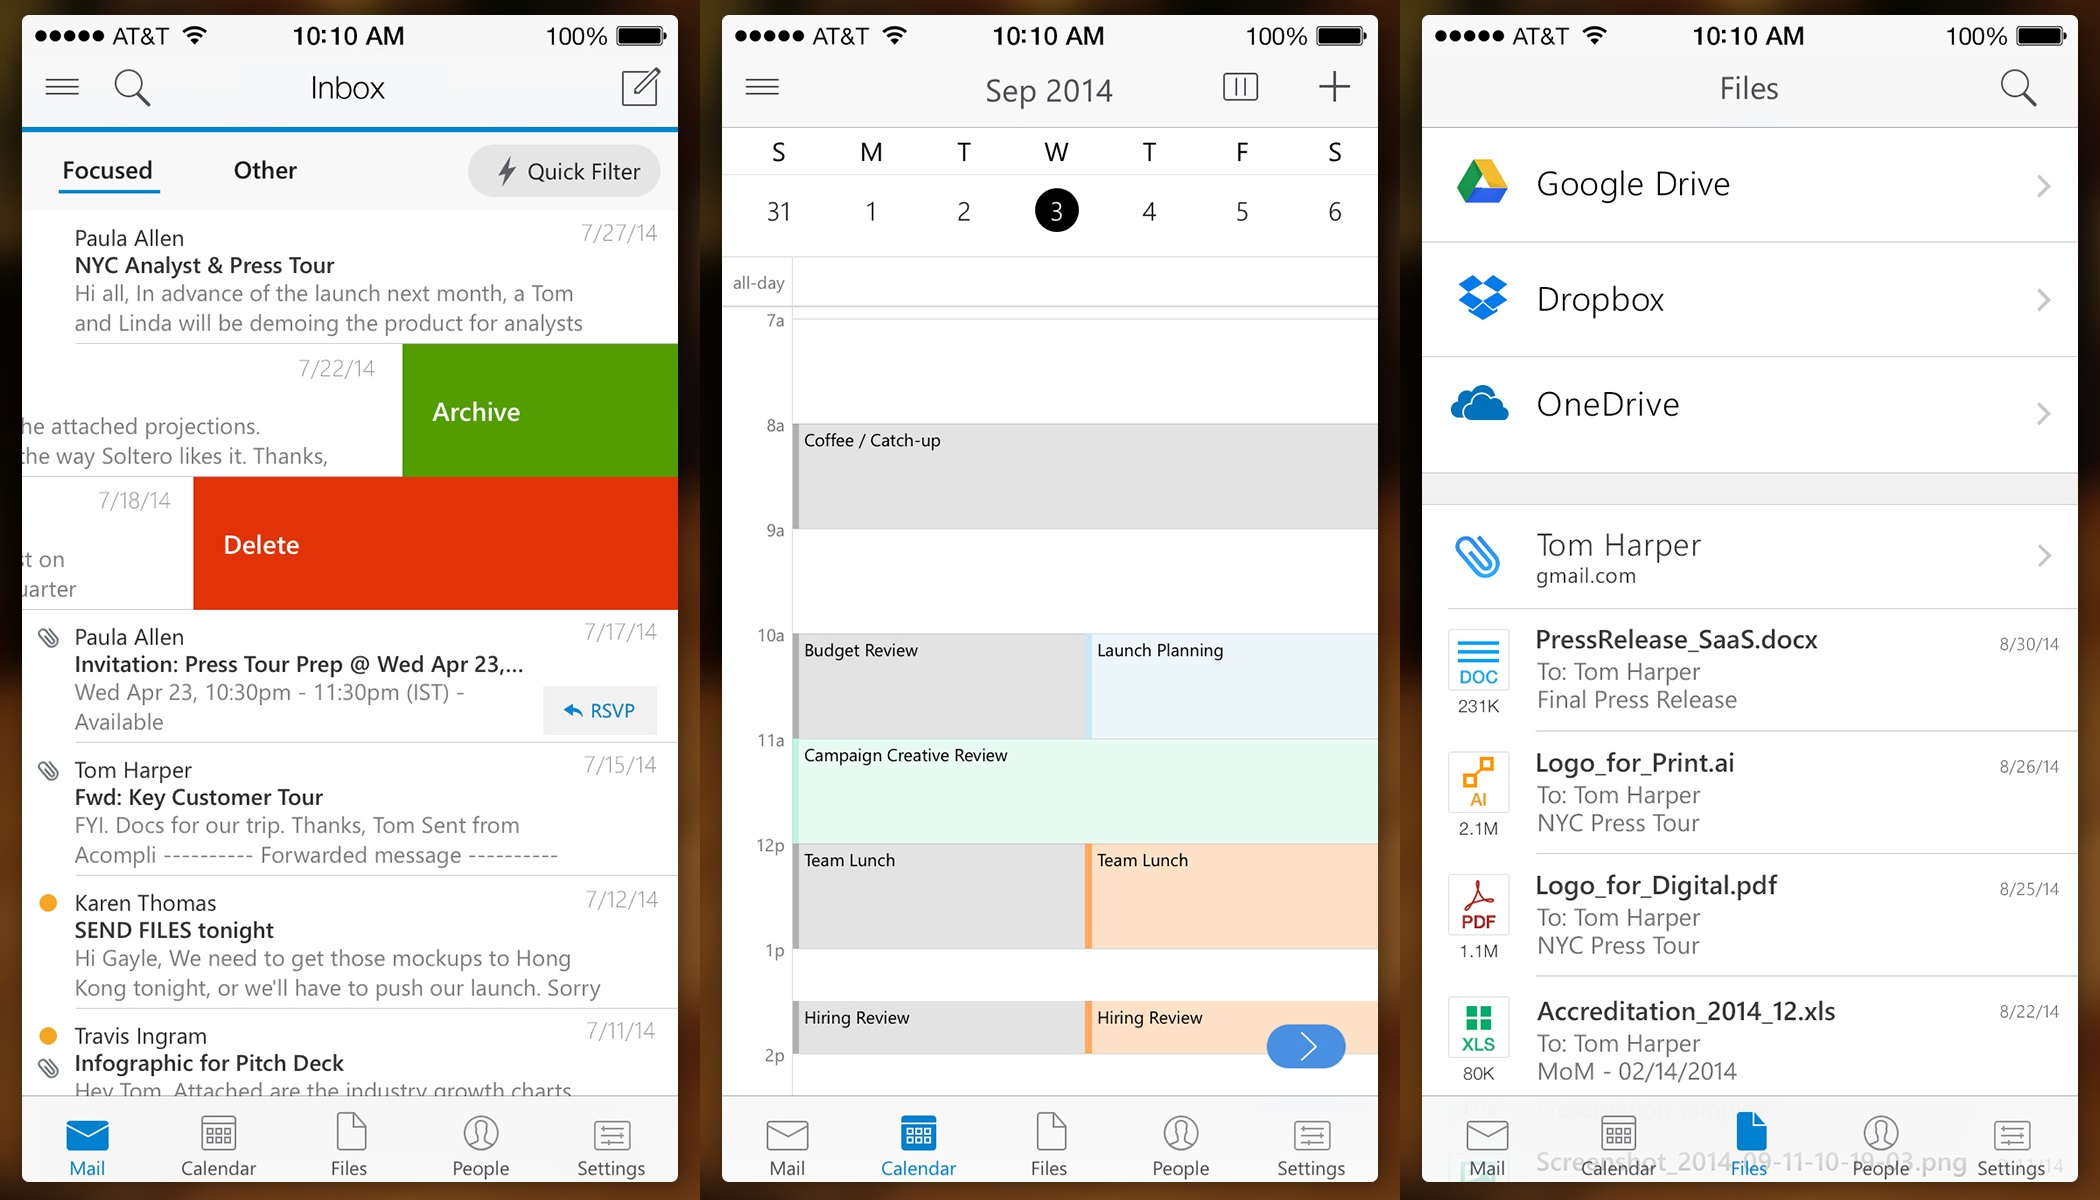 Outlook for iPhone